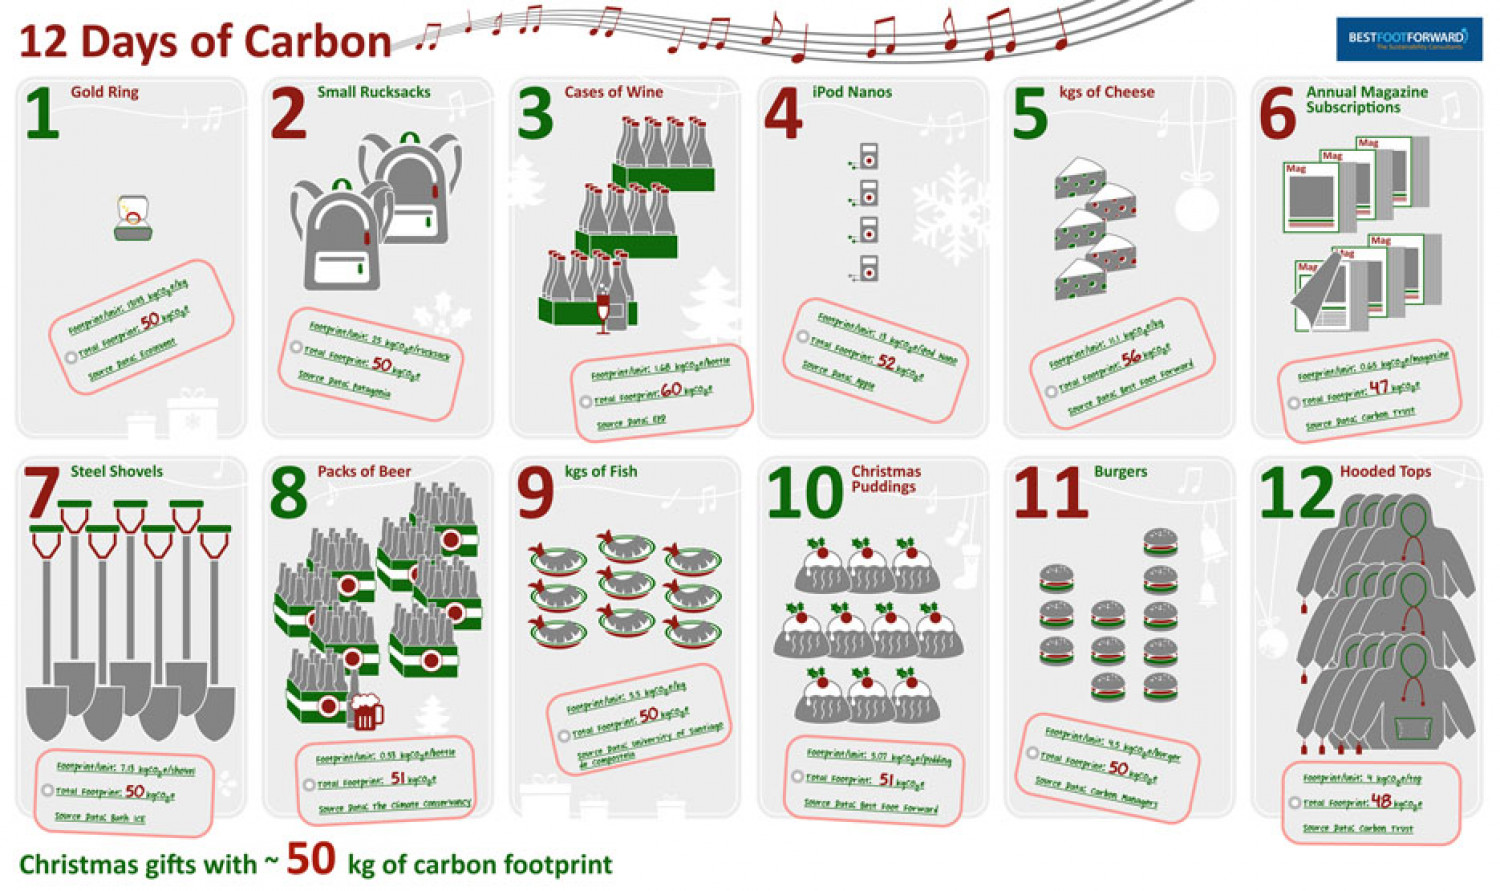 12 Days of Carbon Infographic